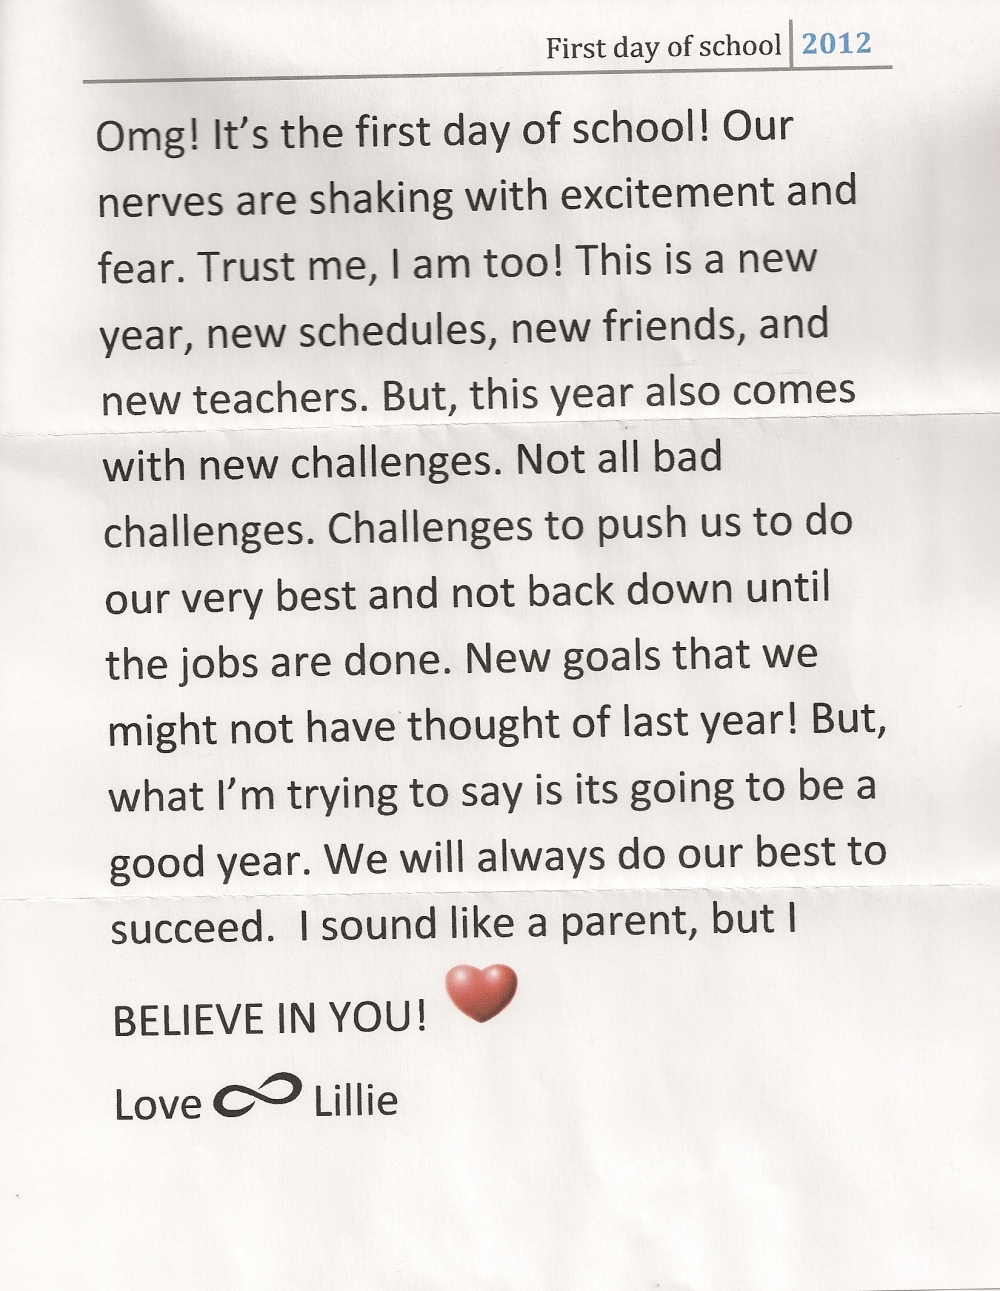 My daughter took the time to put a message together for her friends at the bus stop, on the first day of school.  She printed them, put them into individual envelopes and handed them out.  Lillie forgot the messages originally, so she ran back home to get them.